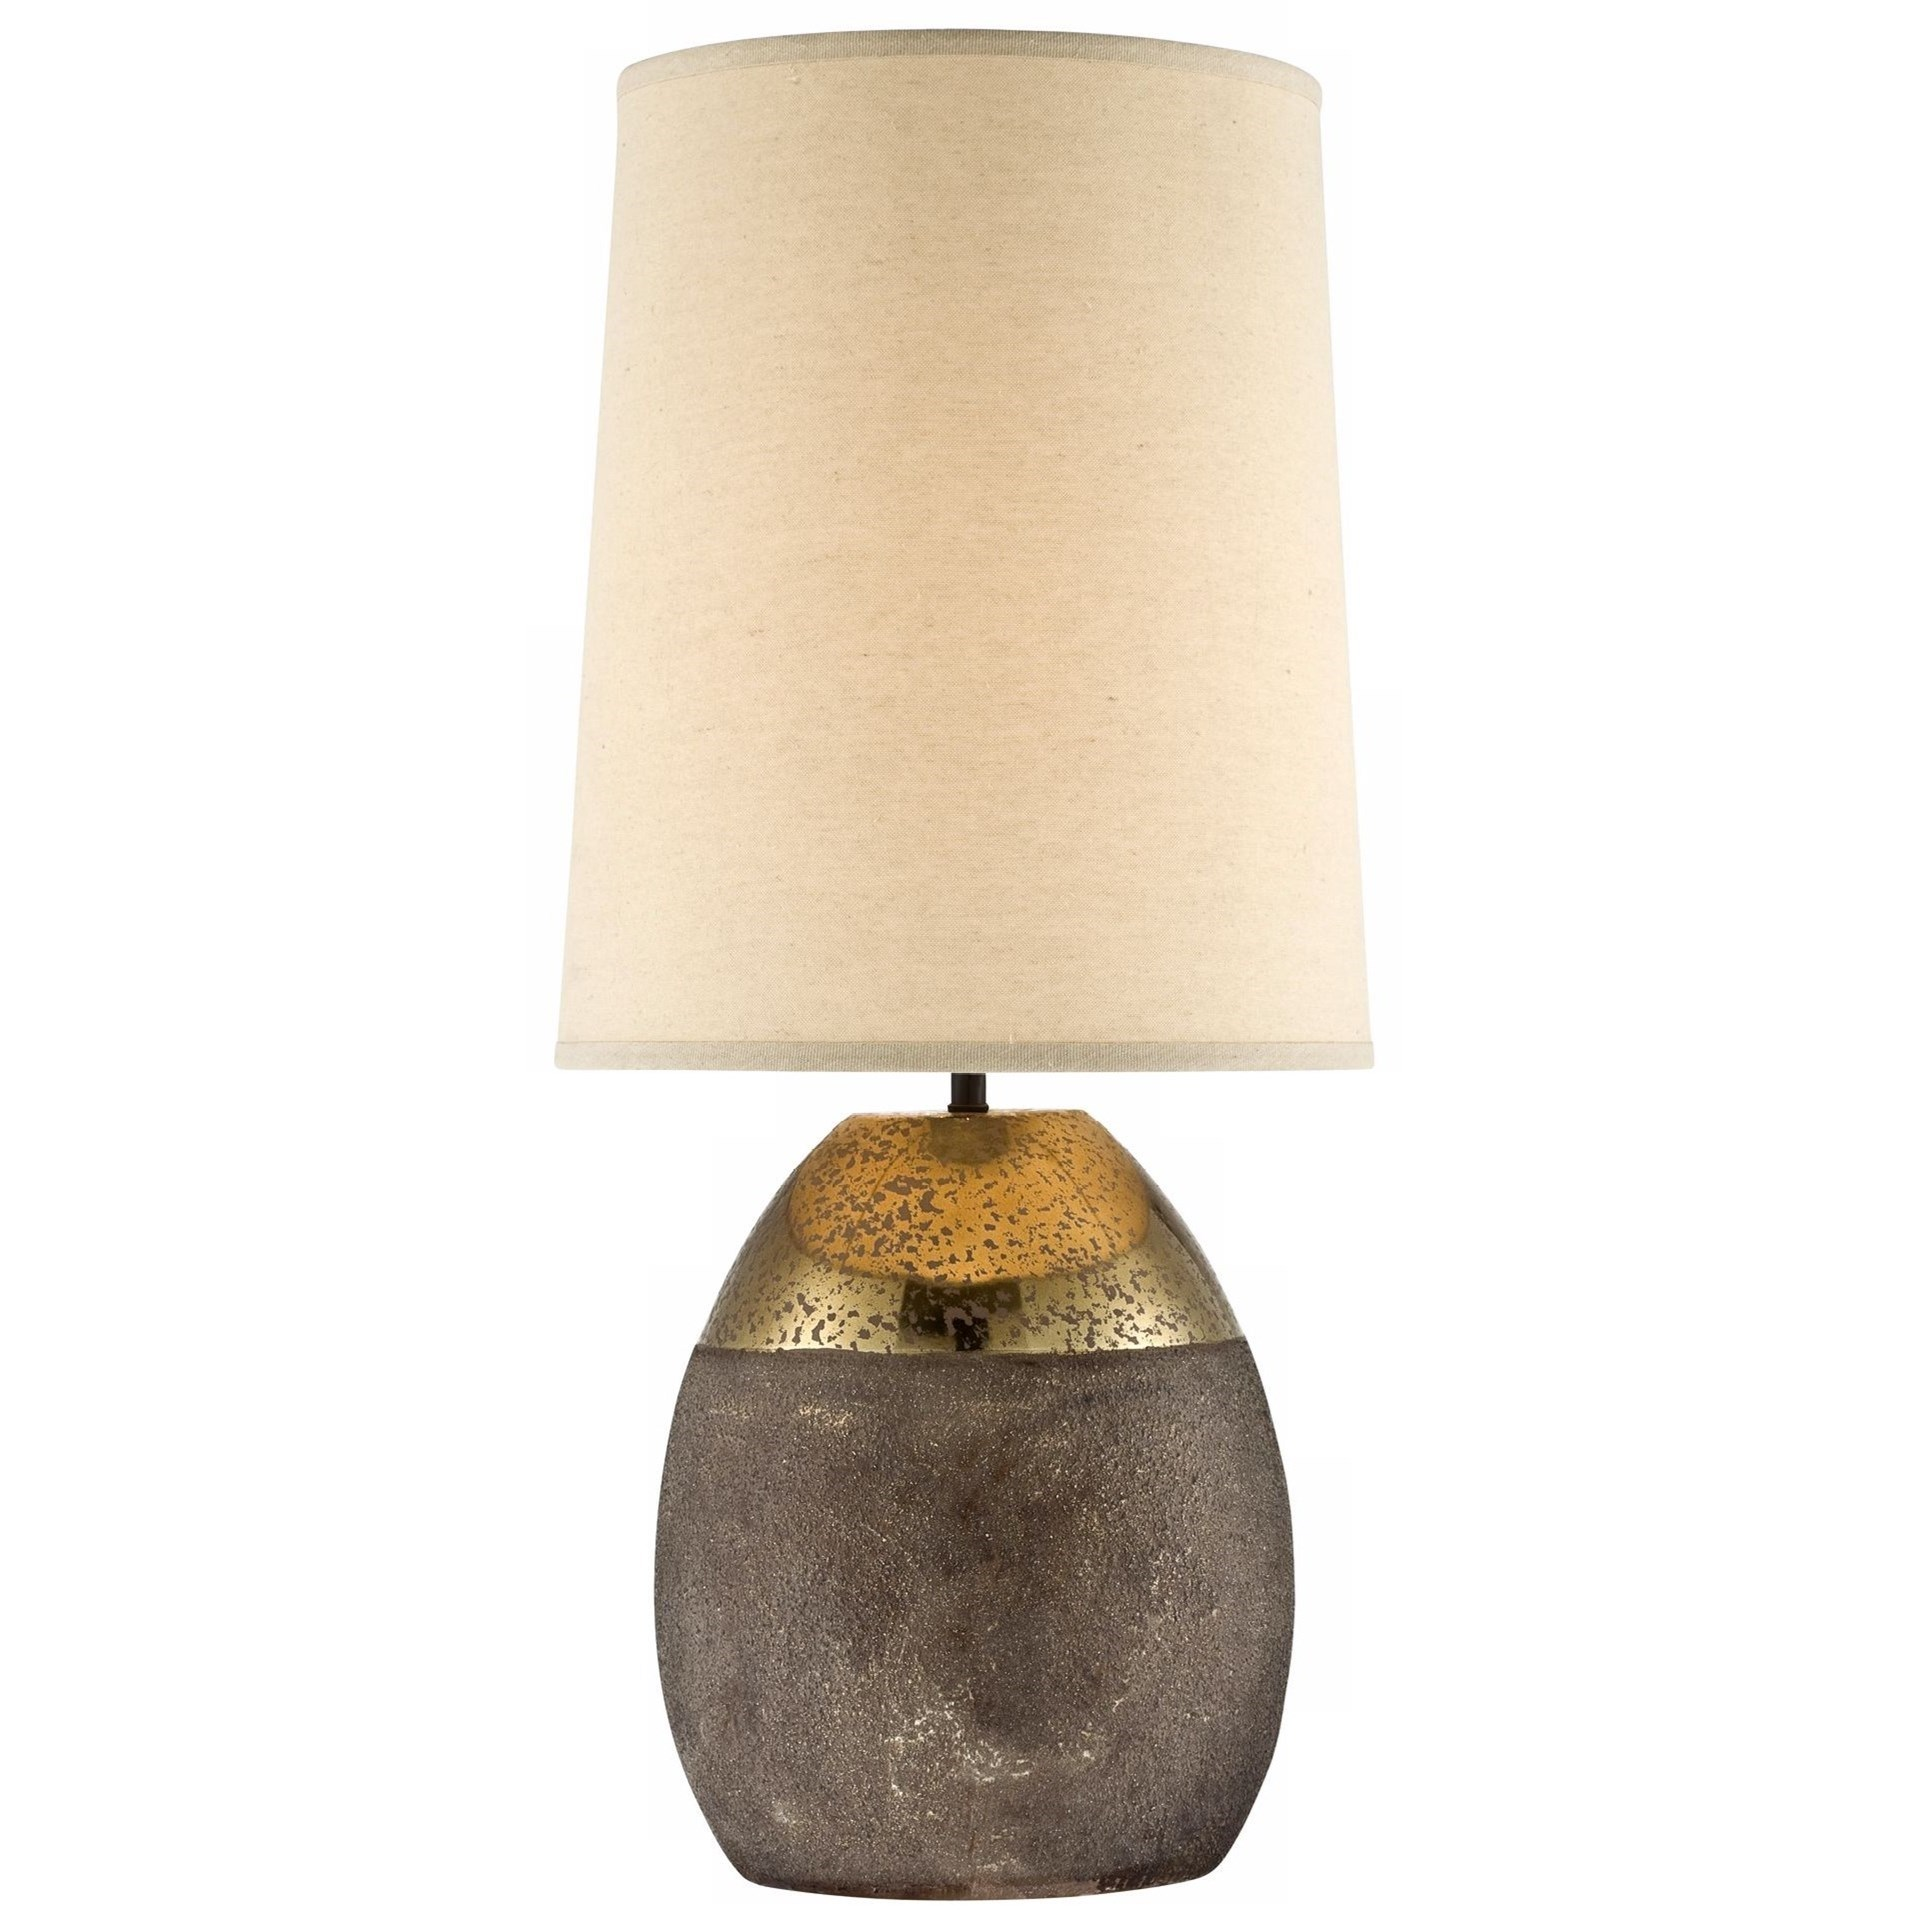 Table Lamps Oly Lamp By Pacific Coast Lighting At Sheely S Furniture Liance